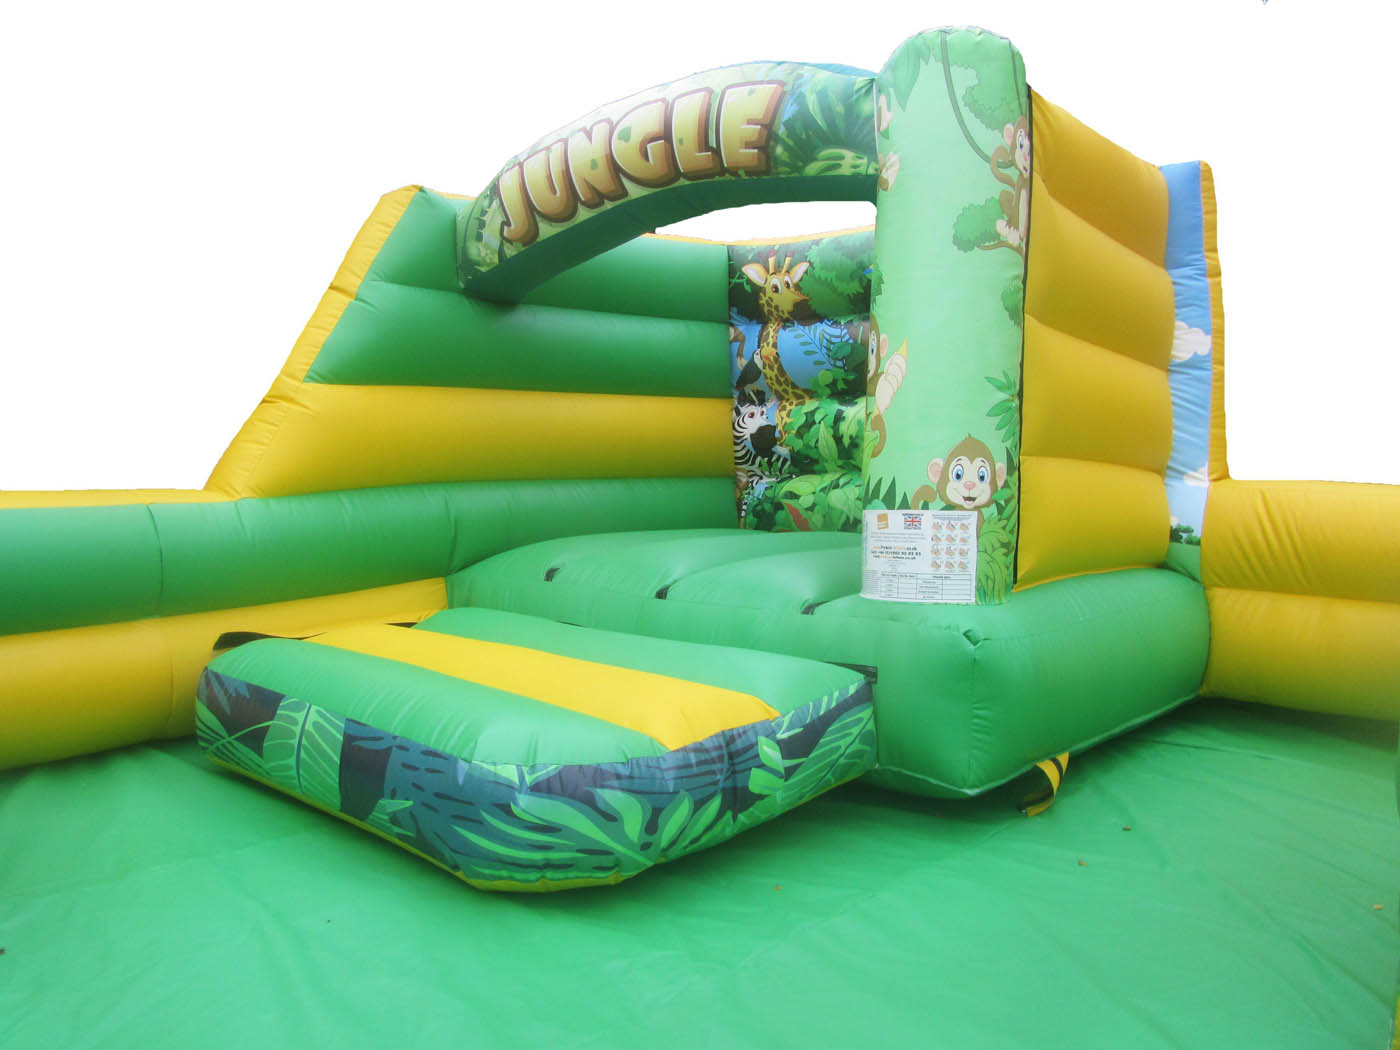 Commercial Toddler Bouncy Castle with Jungle Themed Artwork